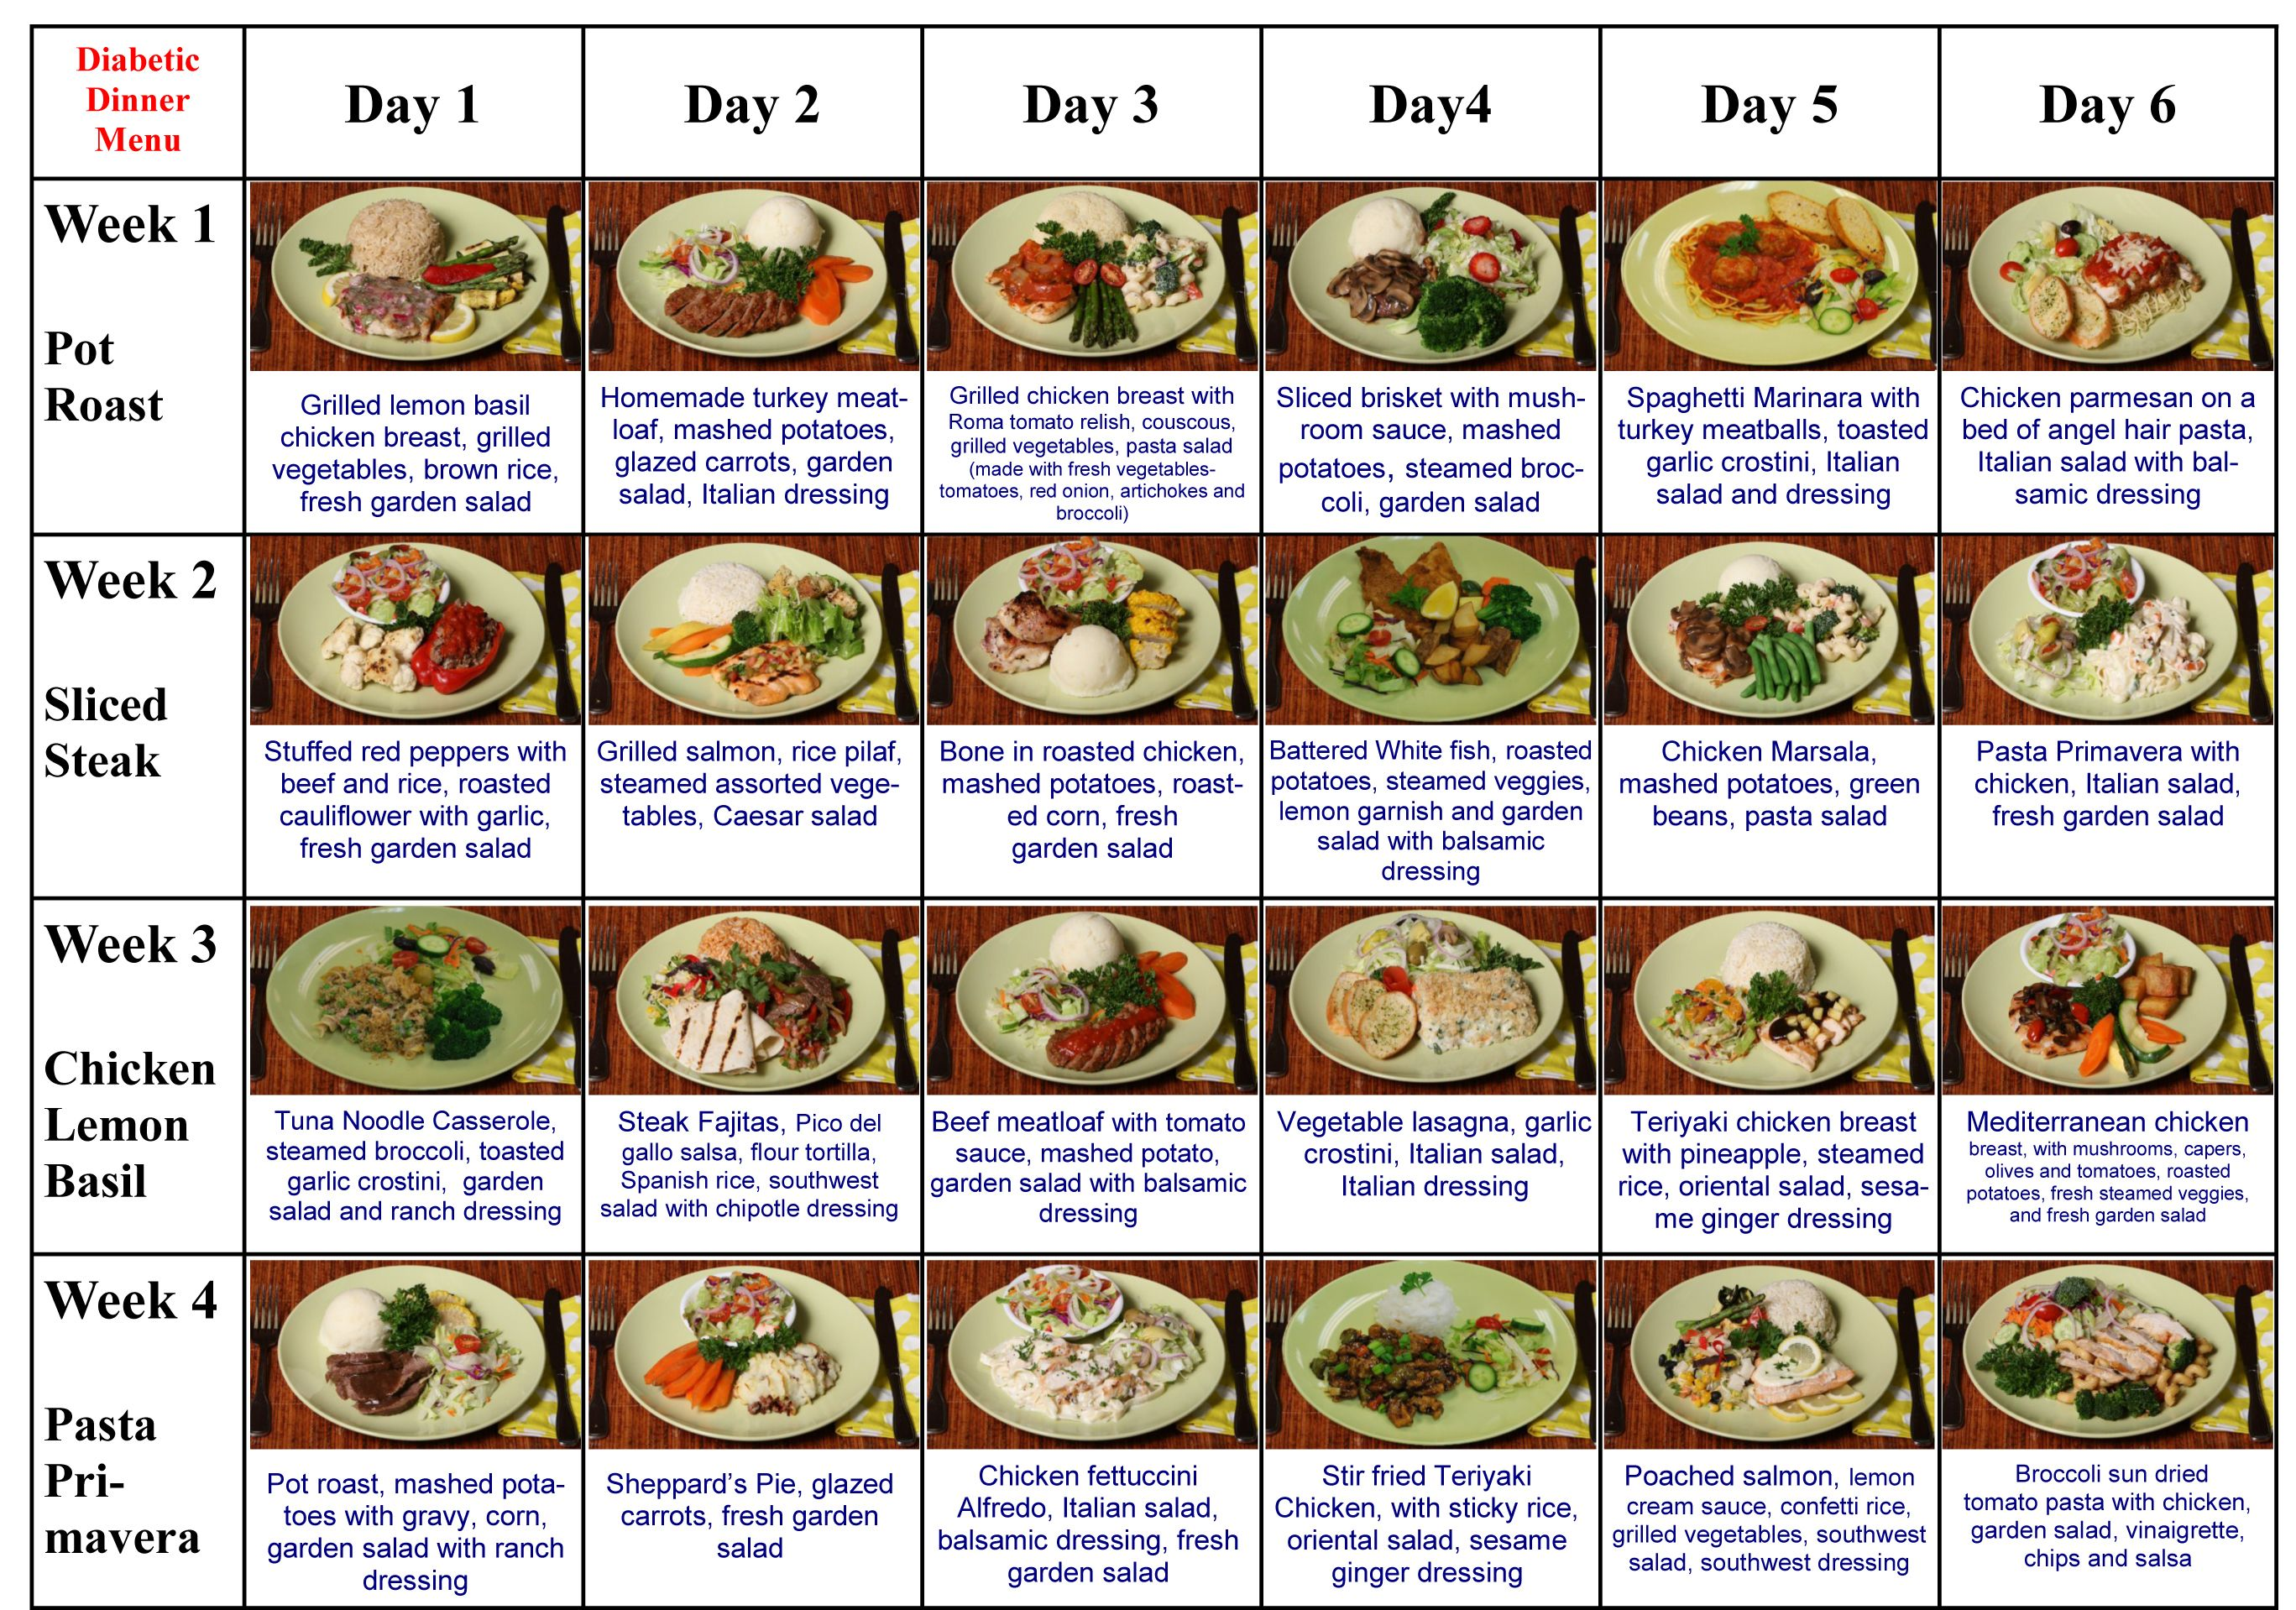 This Has Great Suggestion For The Diabetic Diet Meals